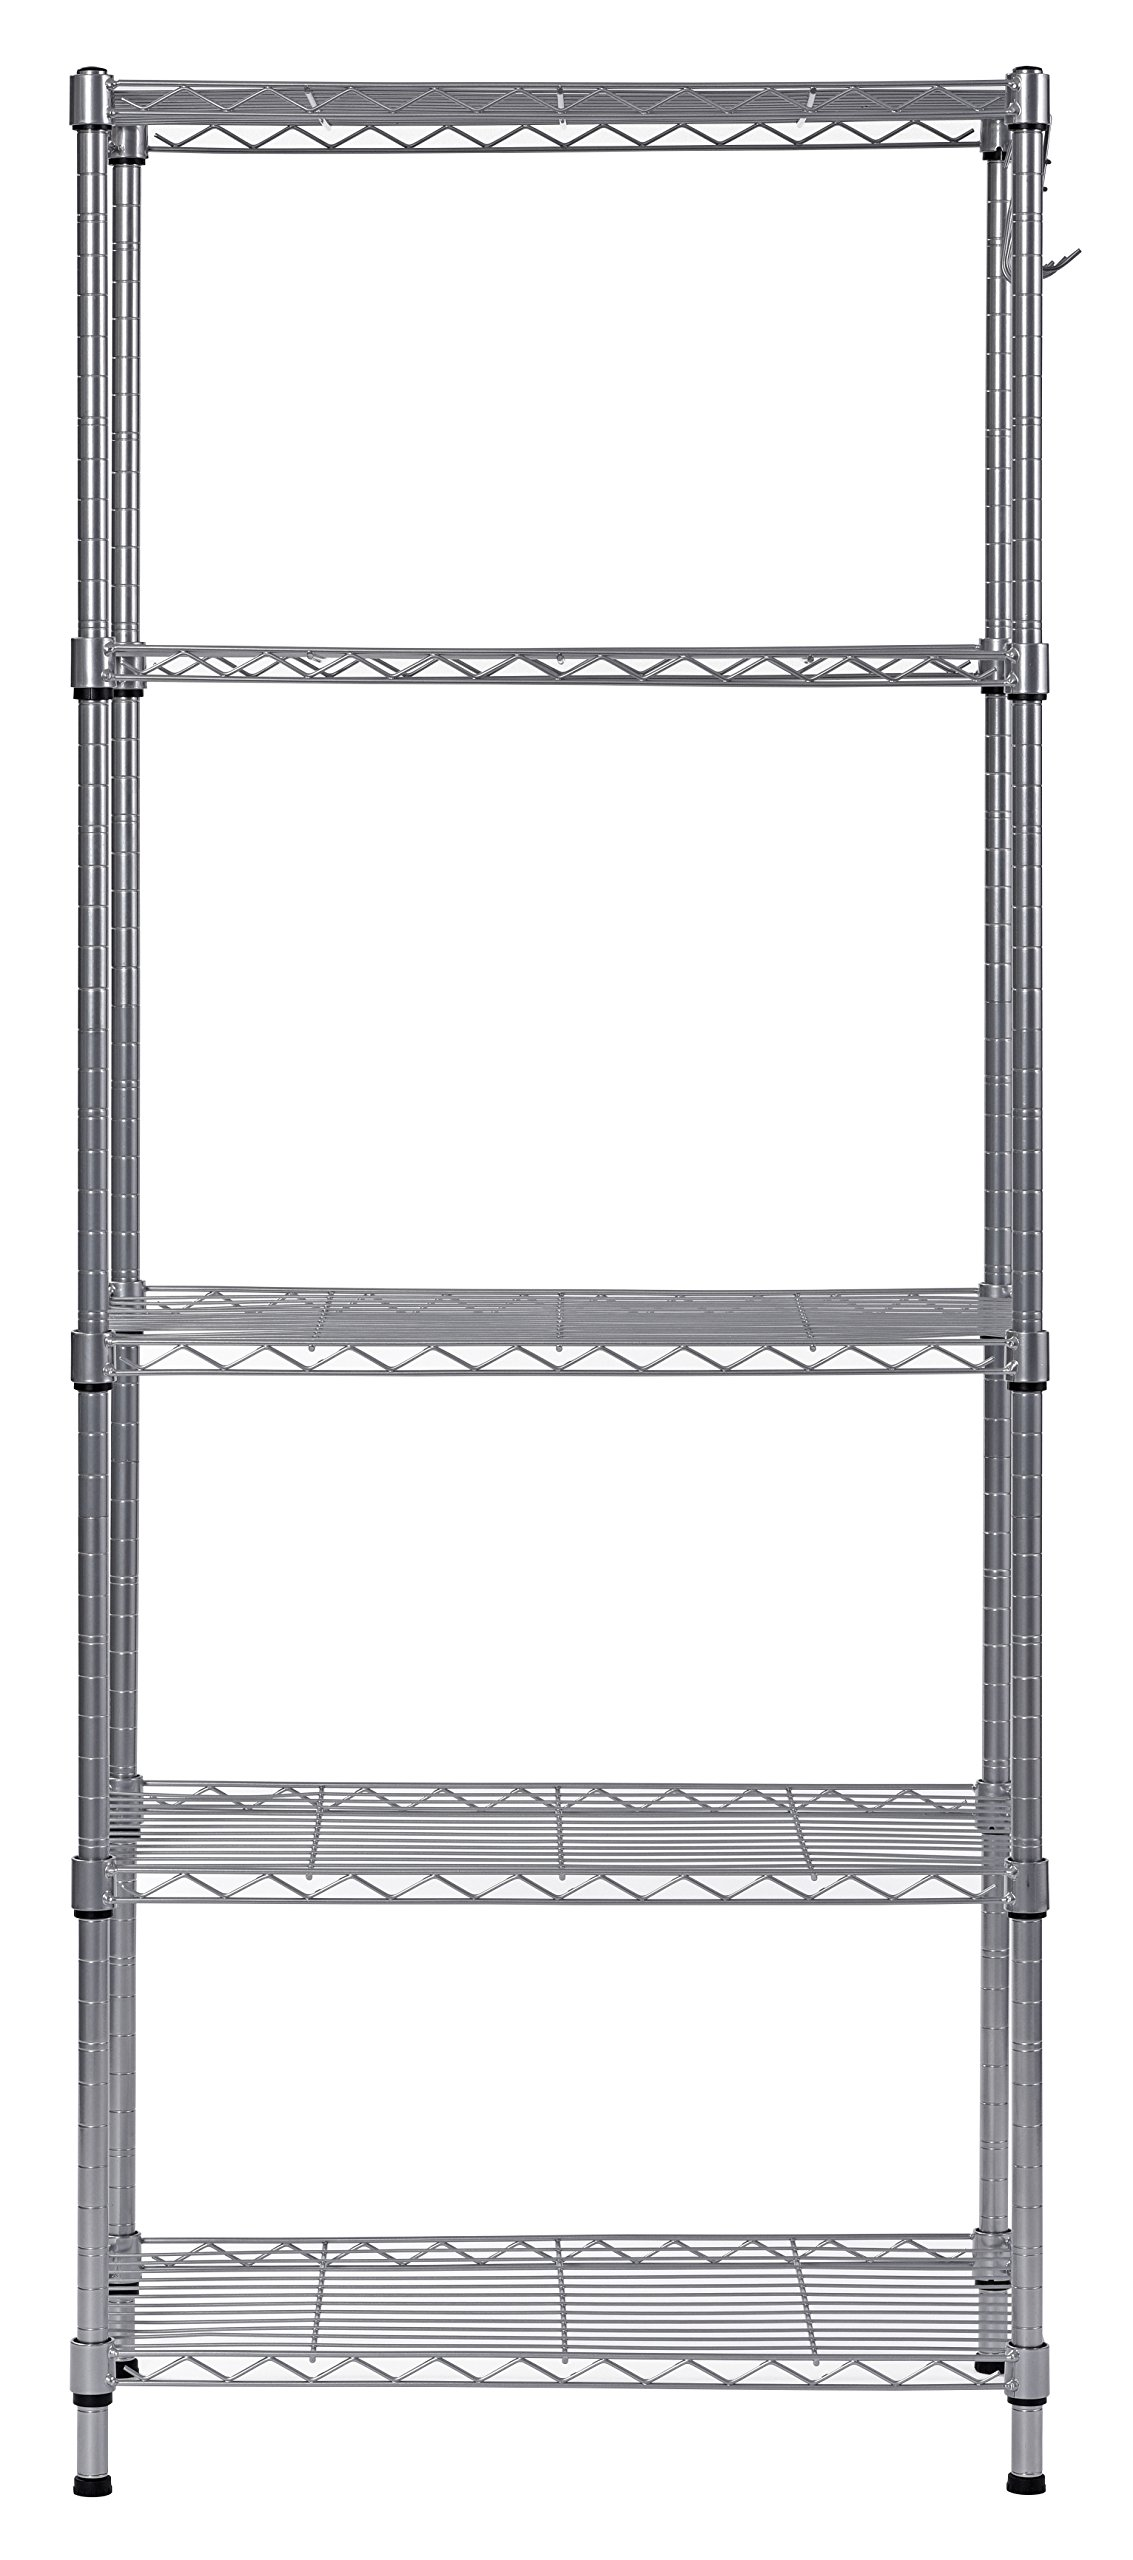 Muscle Rack WS241459-5S 5 Tier Wire Shelving with Hooks in Silver, 59'' Height, 24'' width, 14'' Length